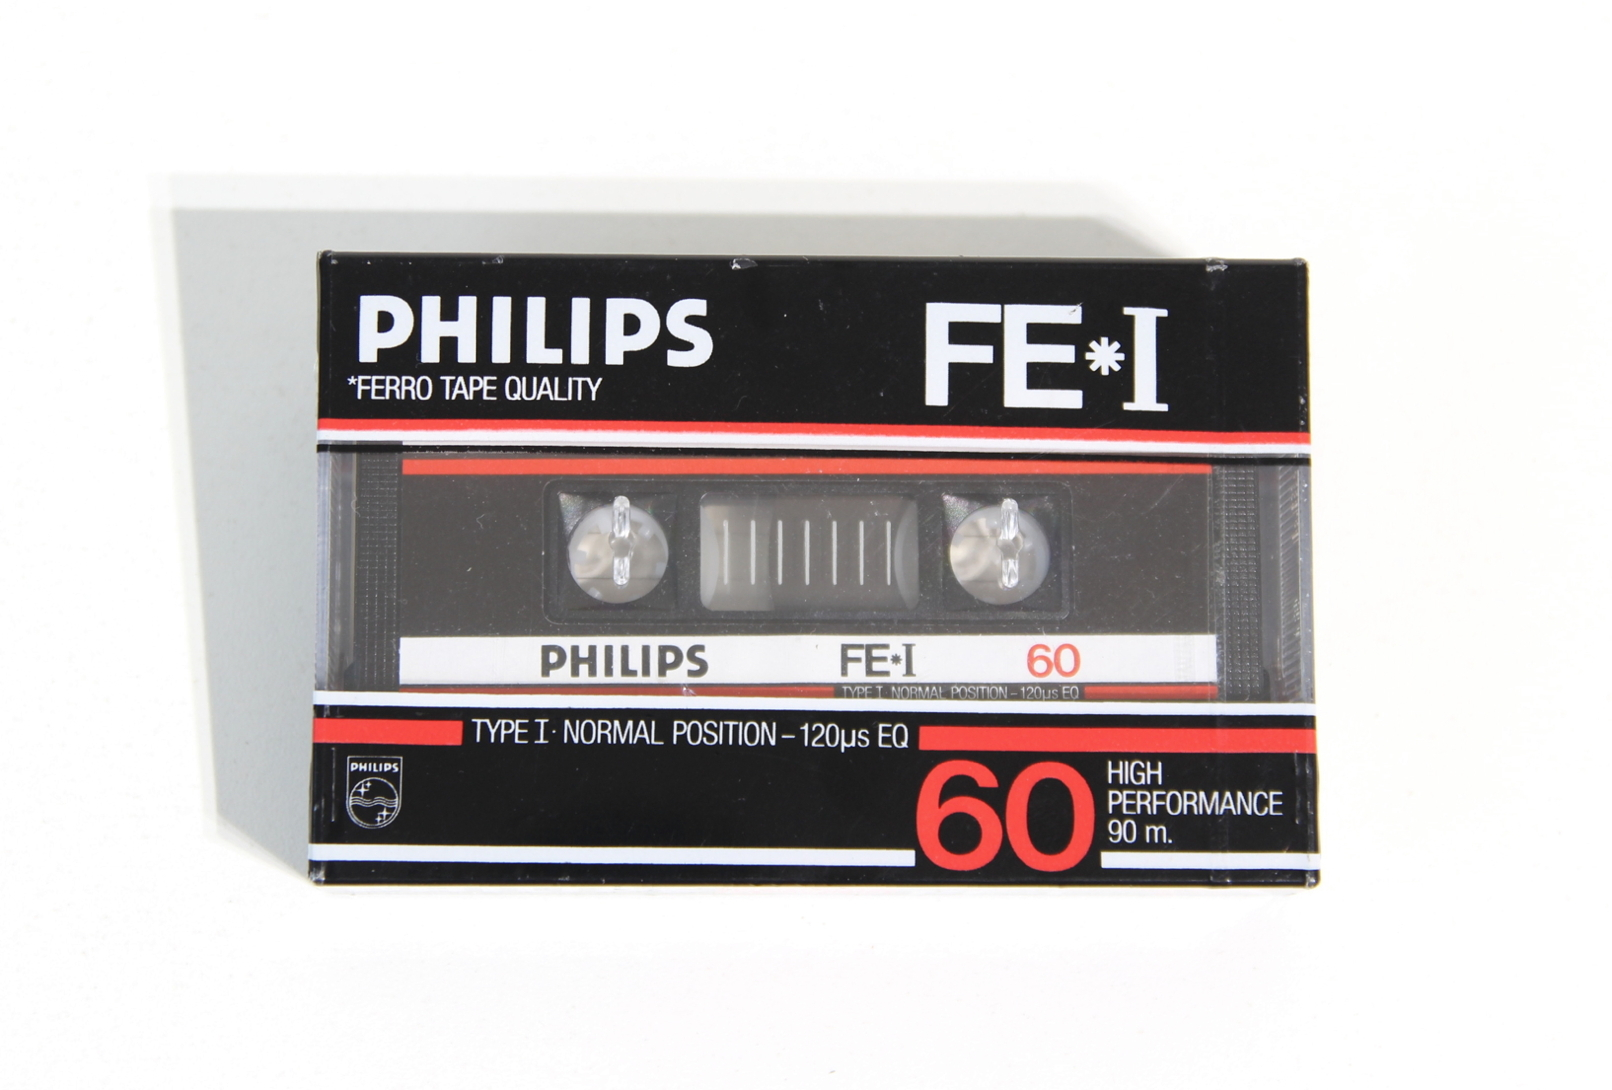 PHILIPS FE-I 60 Position Normal